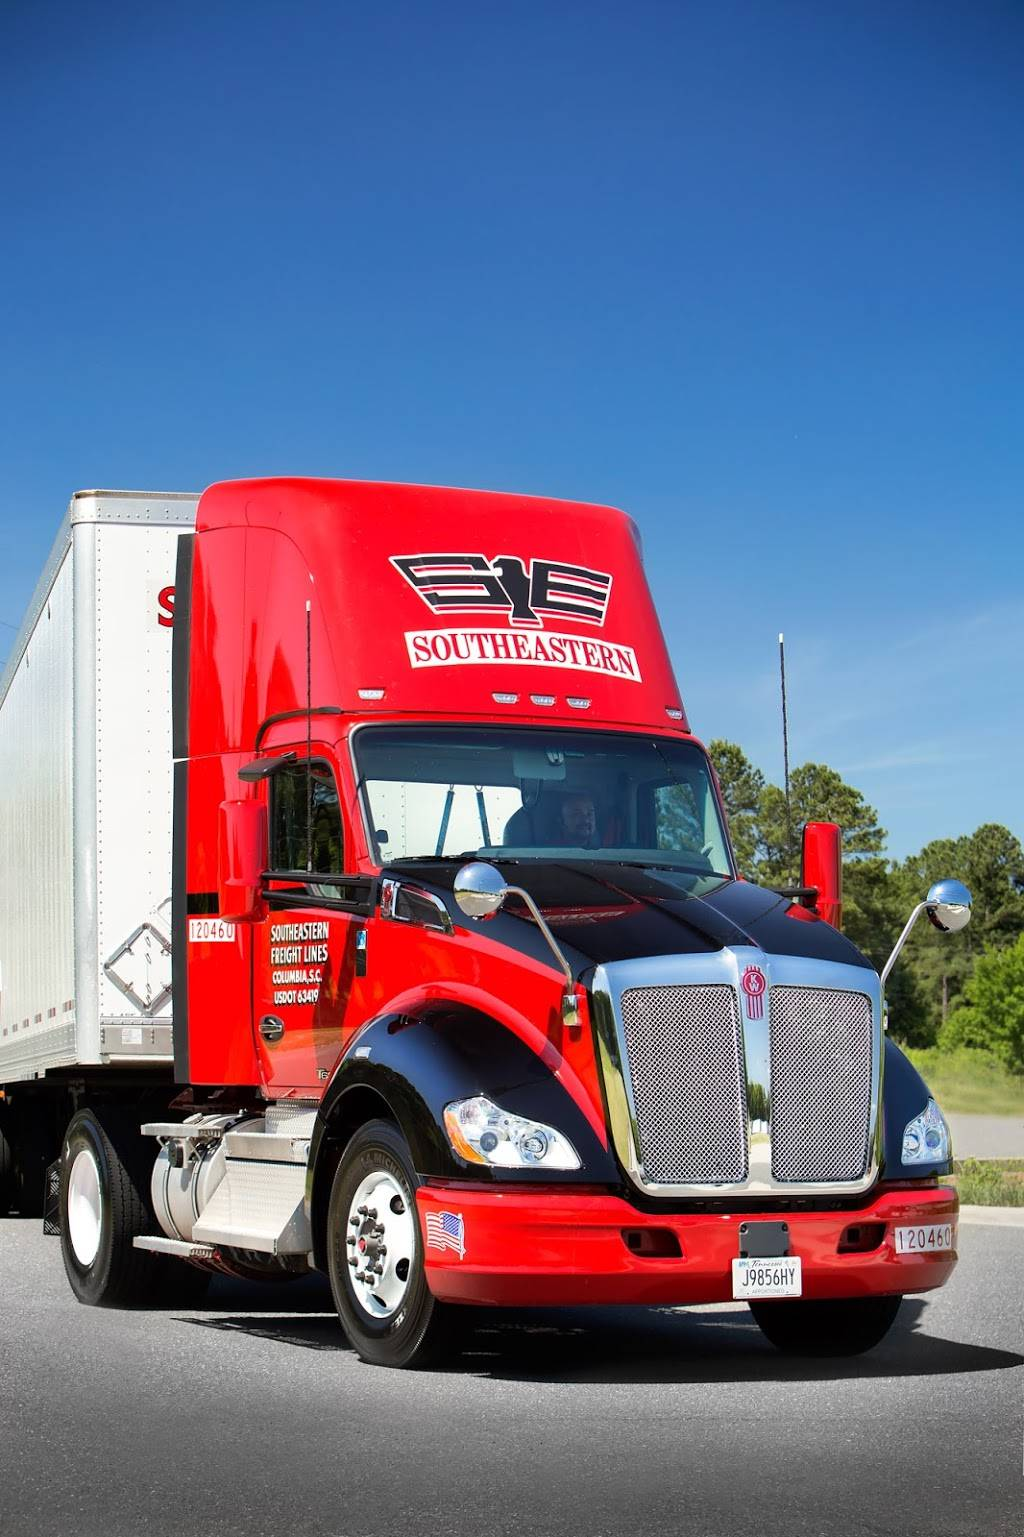 Southeastern Freight Lines - moving company  | Photo 1 of 1 | Address: 5875 NW 72nd Ave, Miami, FL 33166, USA | Phone: (305) 889-0501